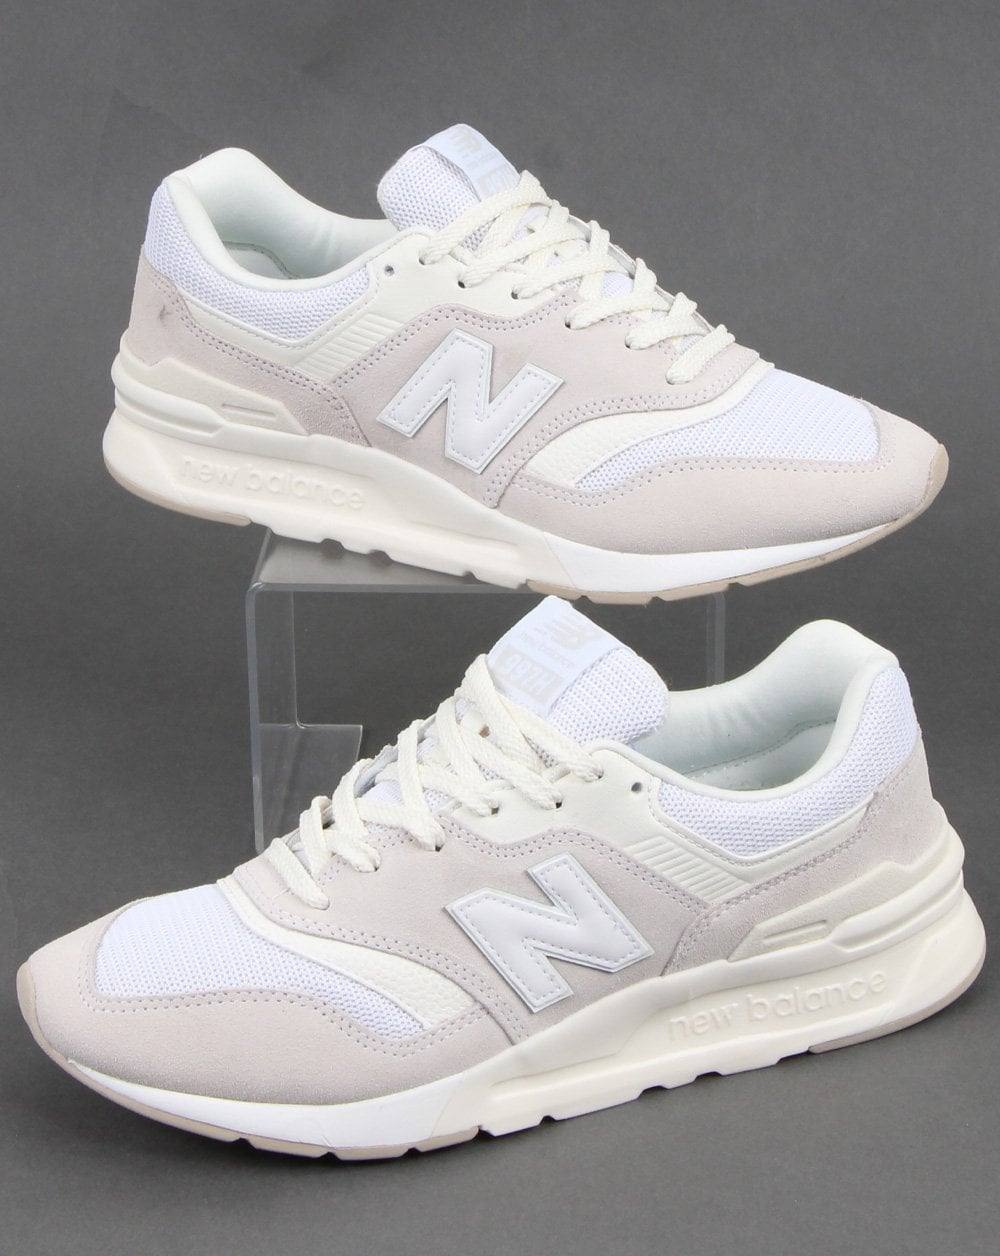 Buy Here Pay Here Ma >> New Balance 997 Trainers in White | 80s casual classics